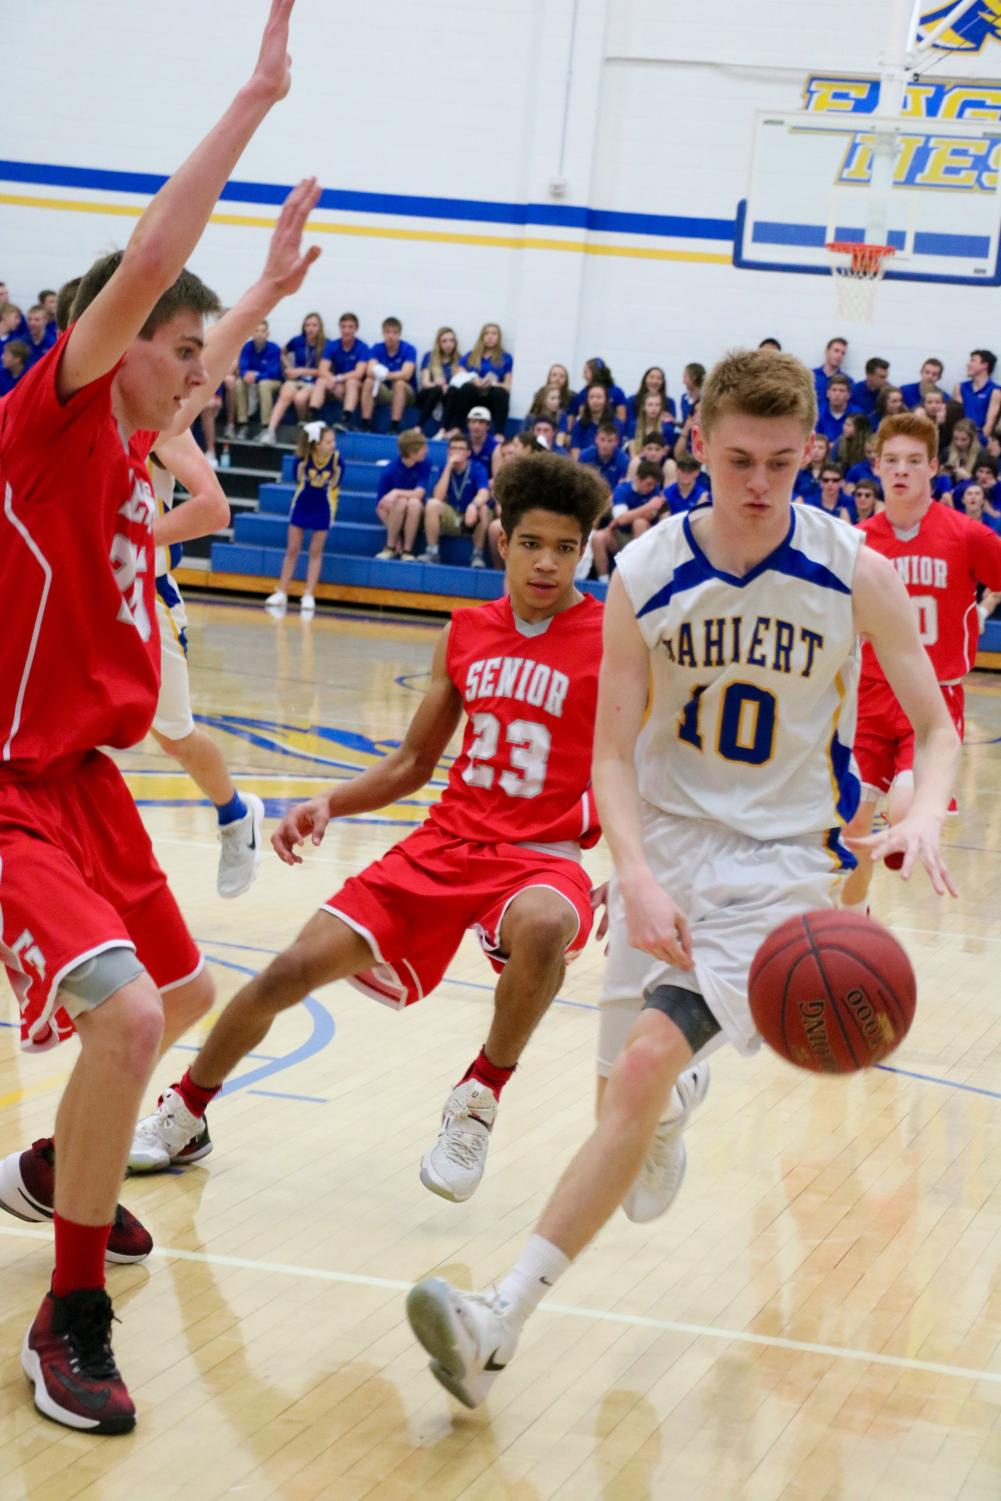 FACING A CHALLENGE Jacob Hocking, '20, competes in a sophomore basketball game against Senior this past season. Hocking is scheduled for eye surgery over Spring Break.